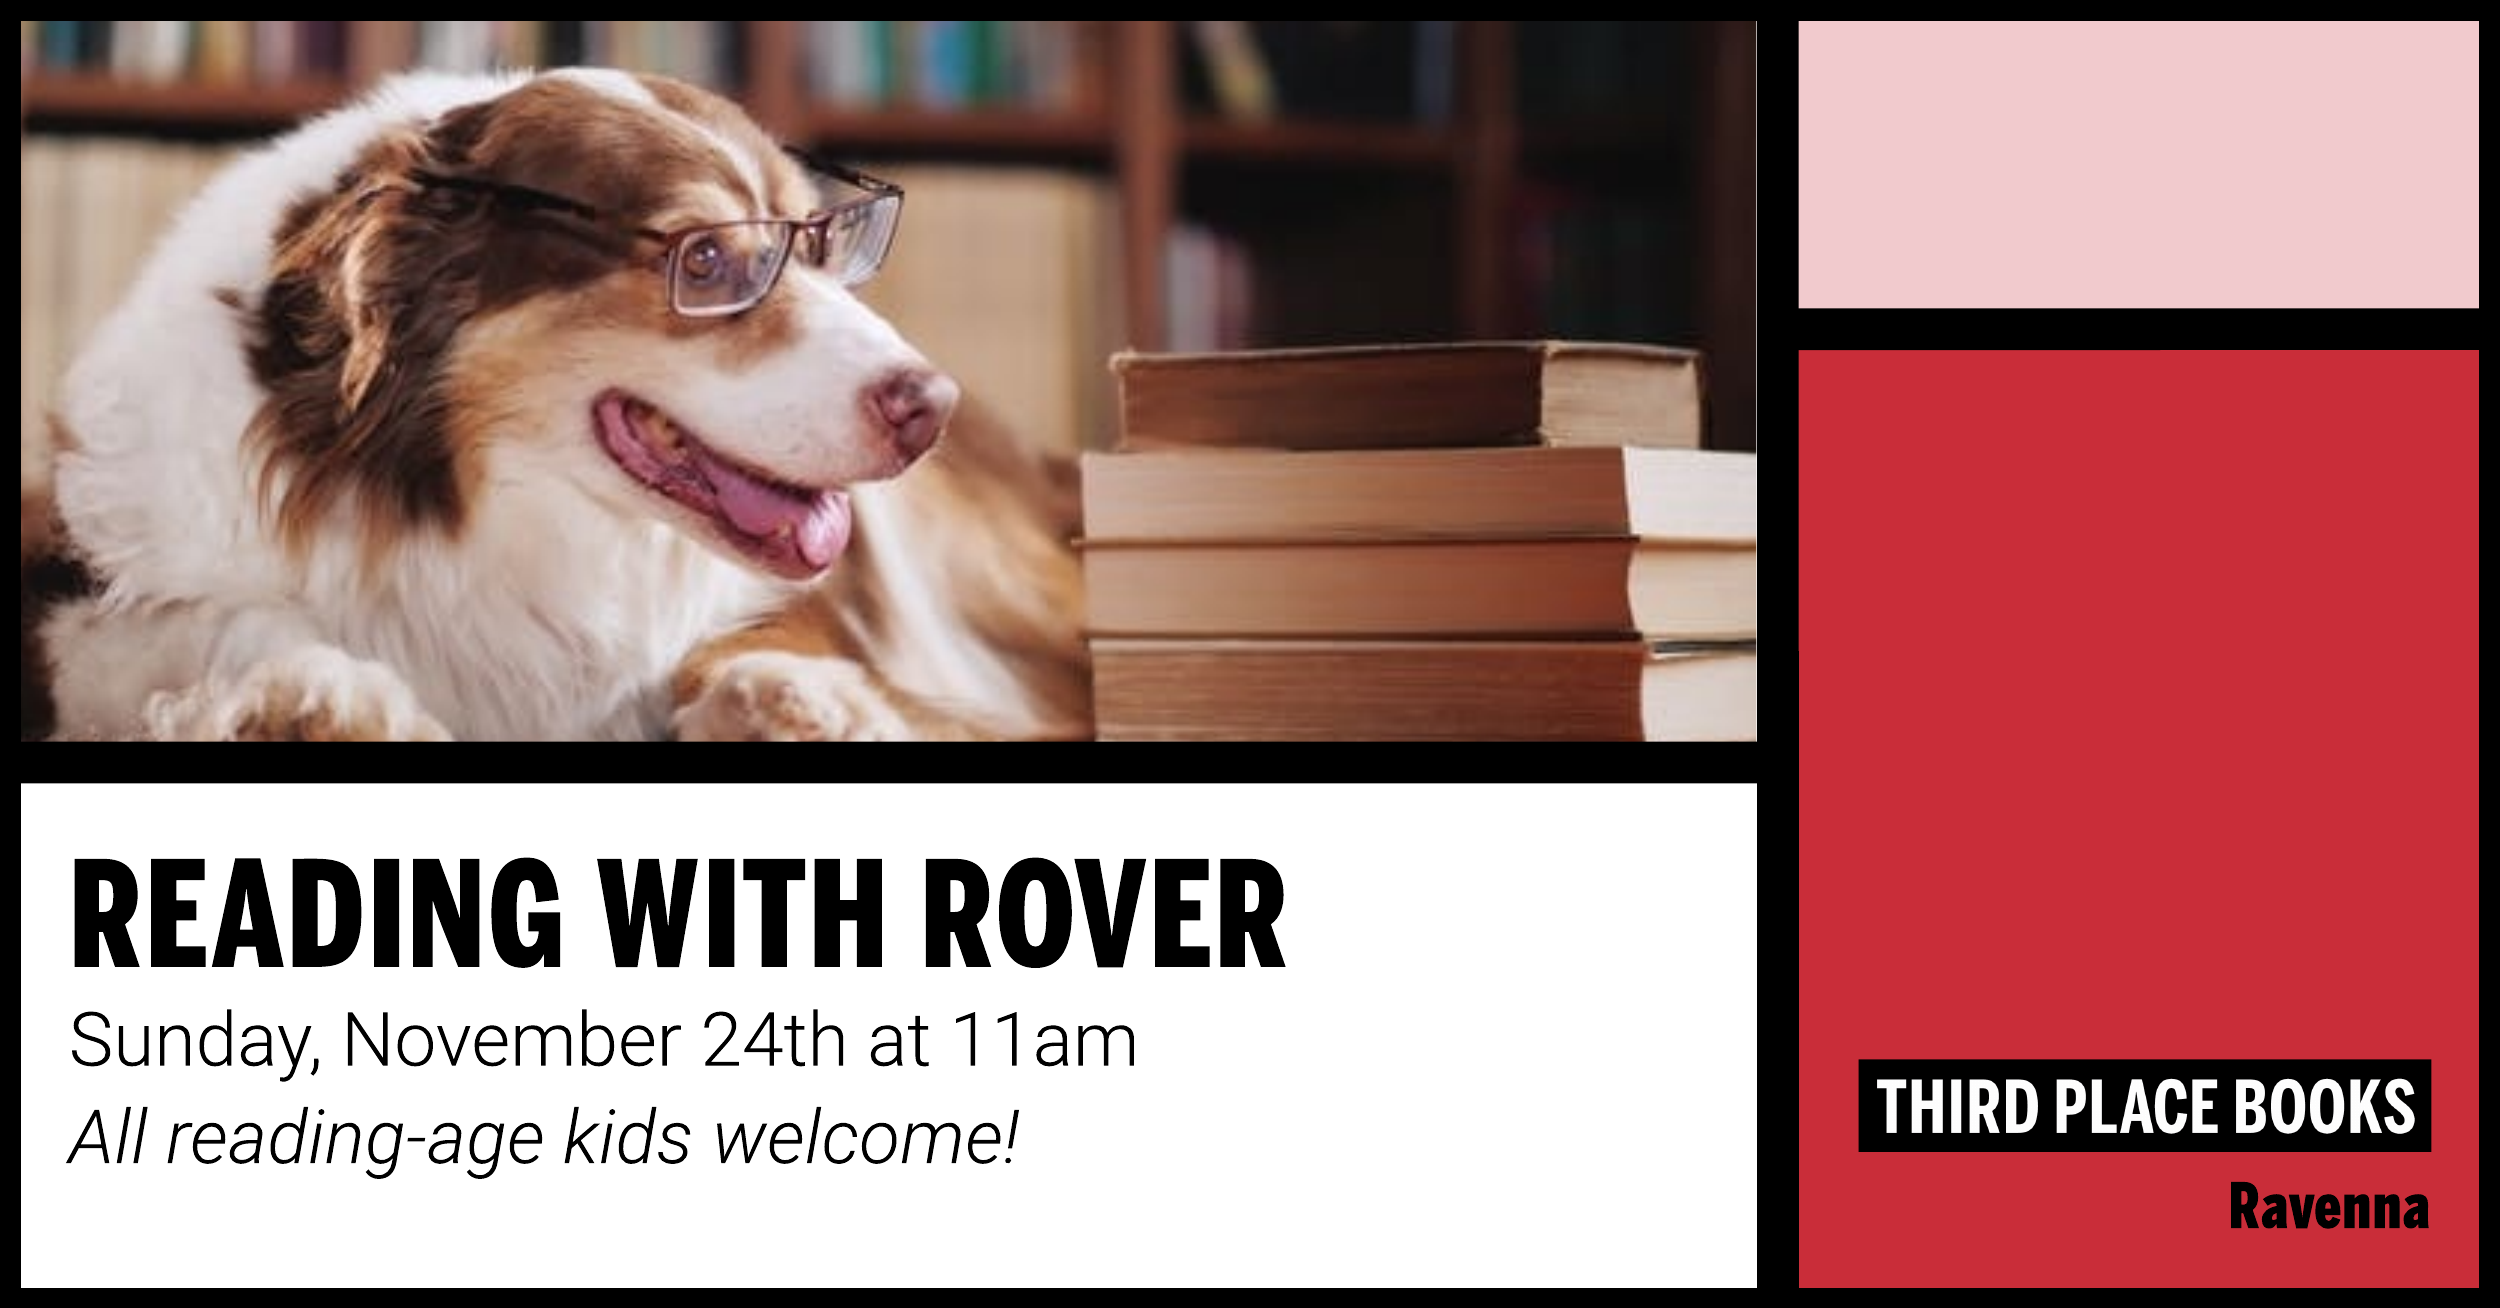 Reading With Rover! Sunday, November 24th at 11am